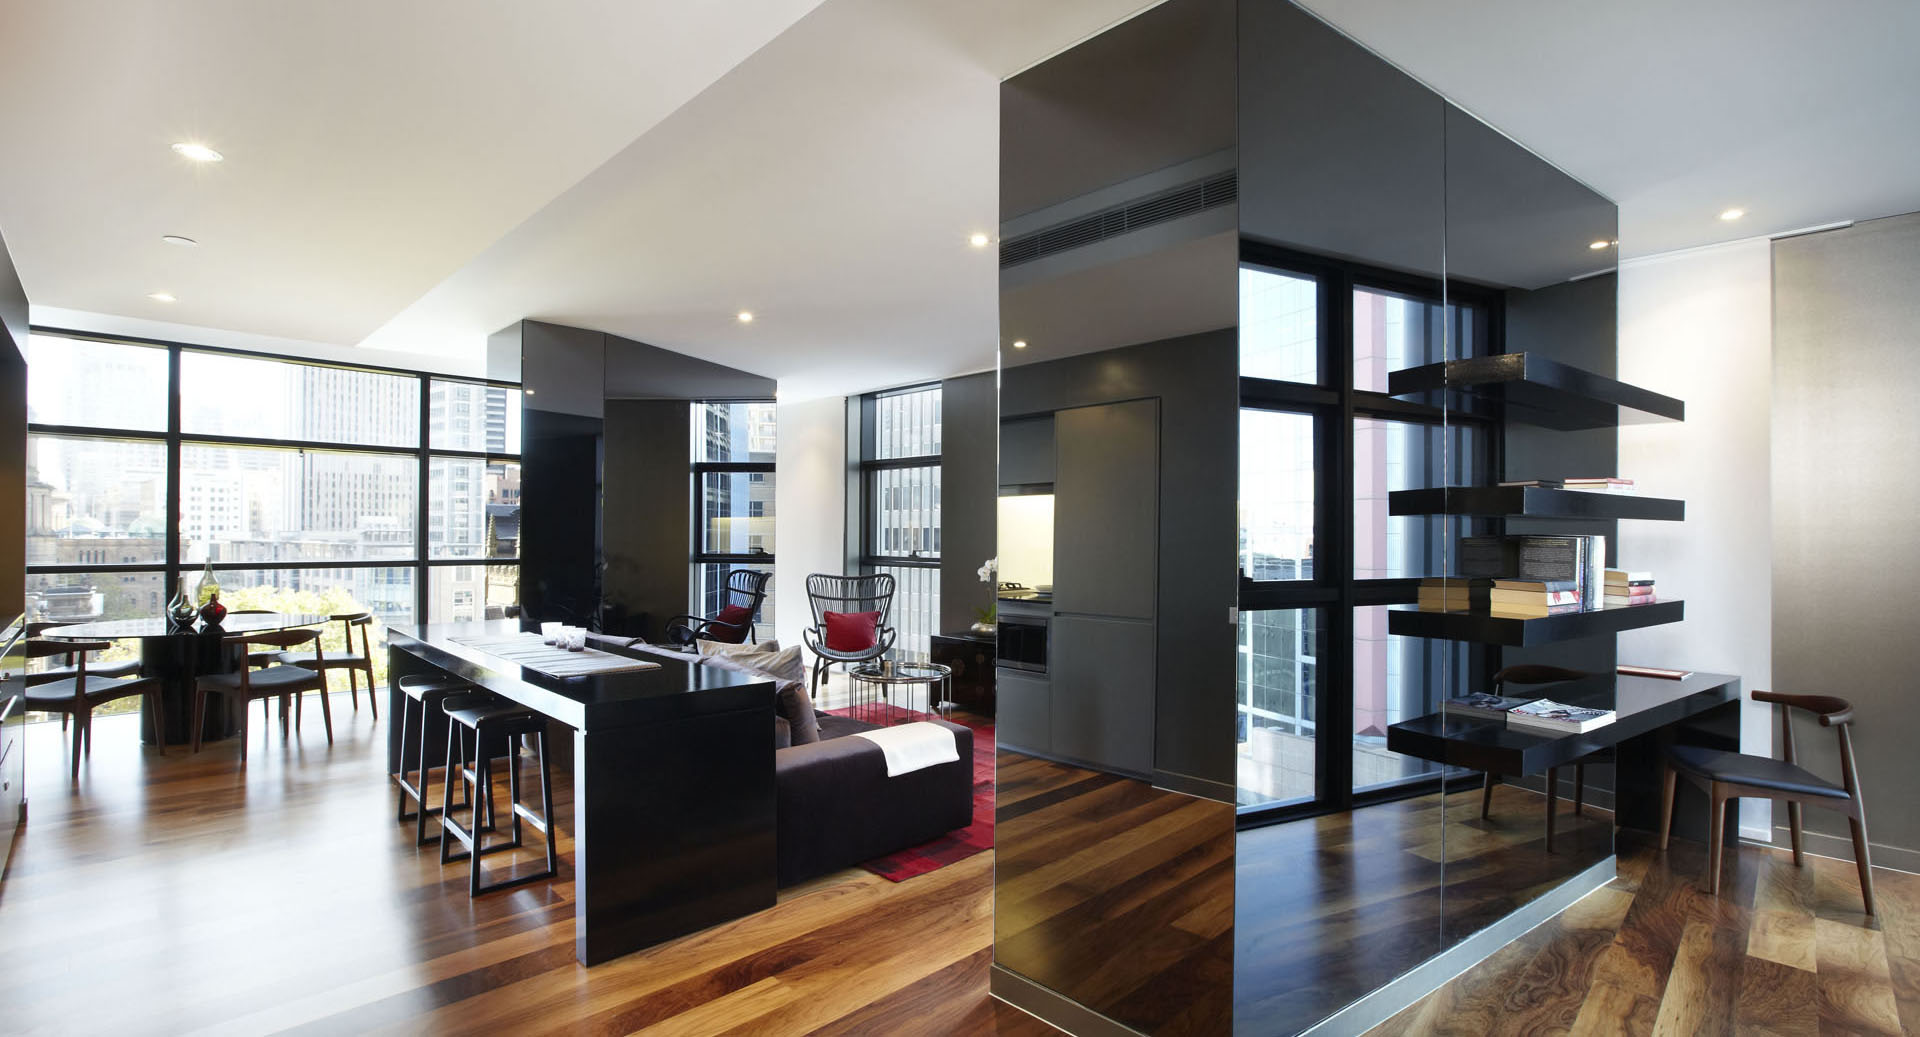 Contemporary apartment designs in sydney idesignarch for Best studio apartment design